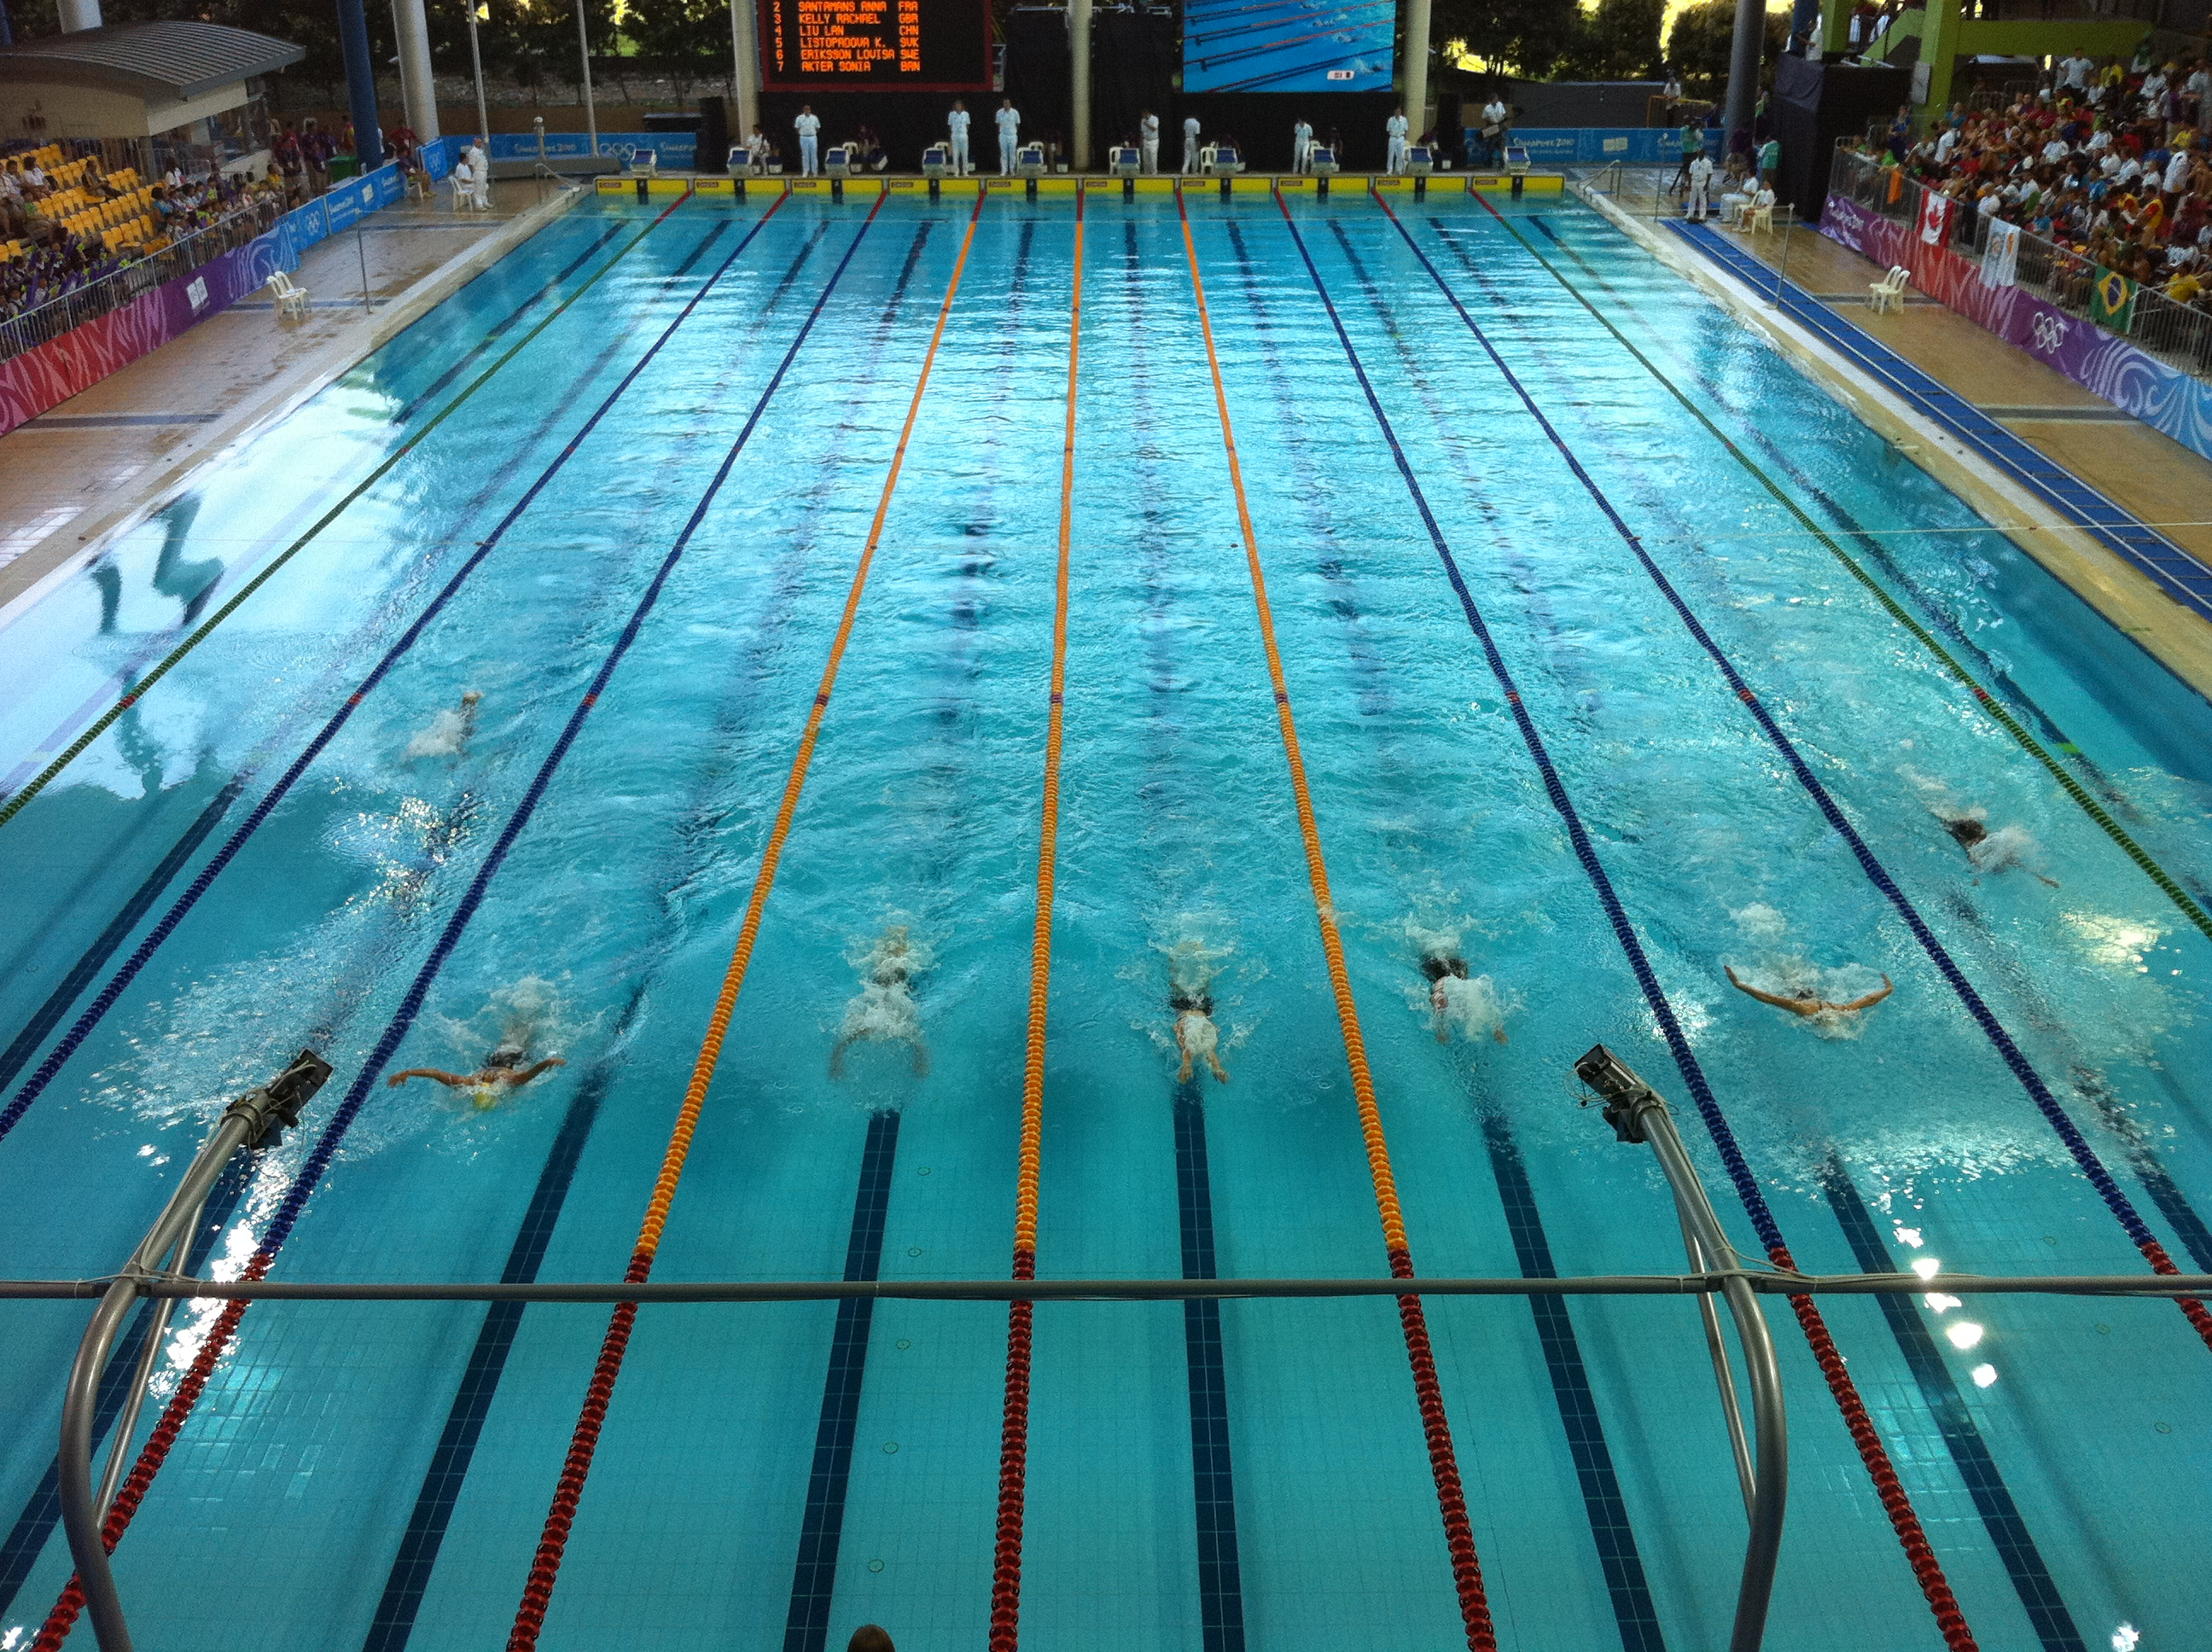 How Long Is A Meter : Managing the transition to long course season coach rick